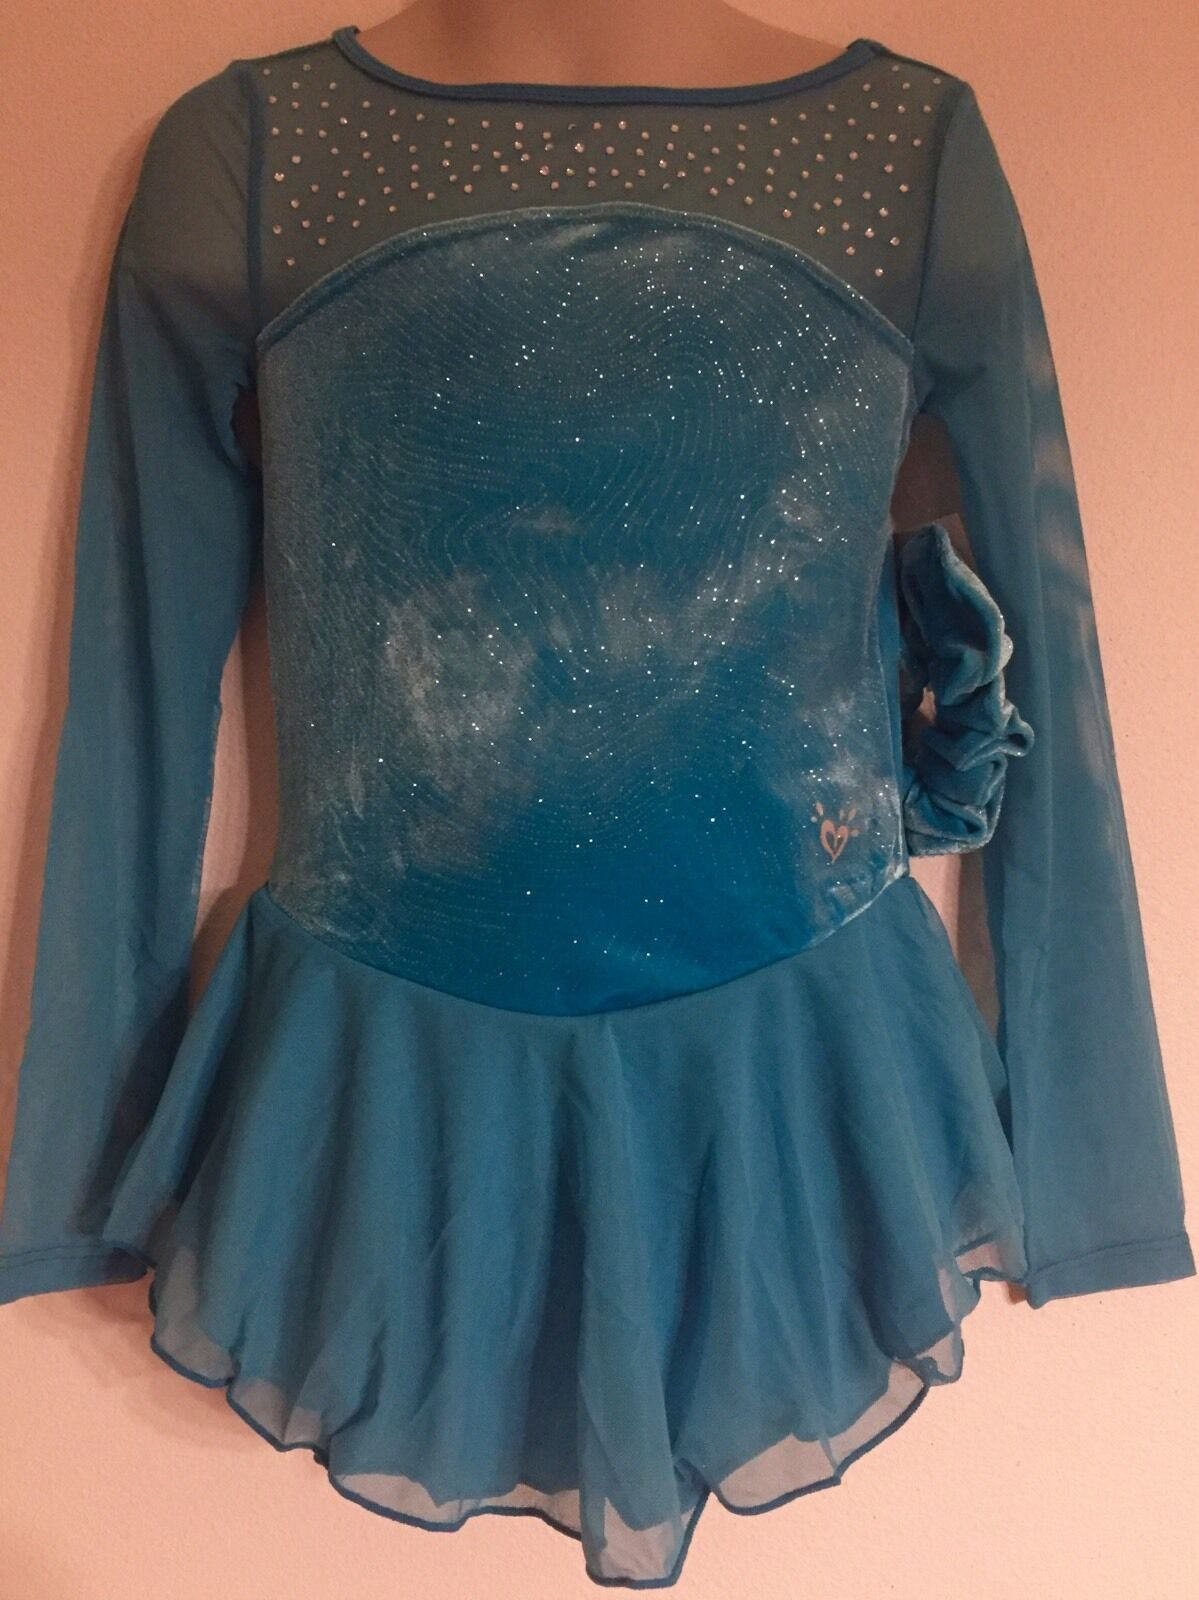 Figure Skating NEW Competition Dress  ld S 7 Ice  S  bluee NWT  stmas  after-sale protection